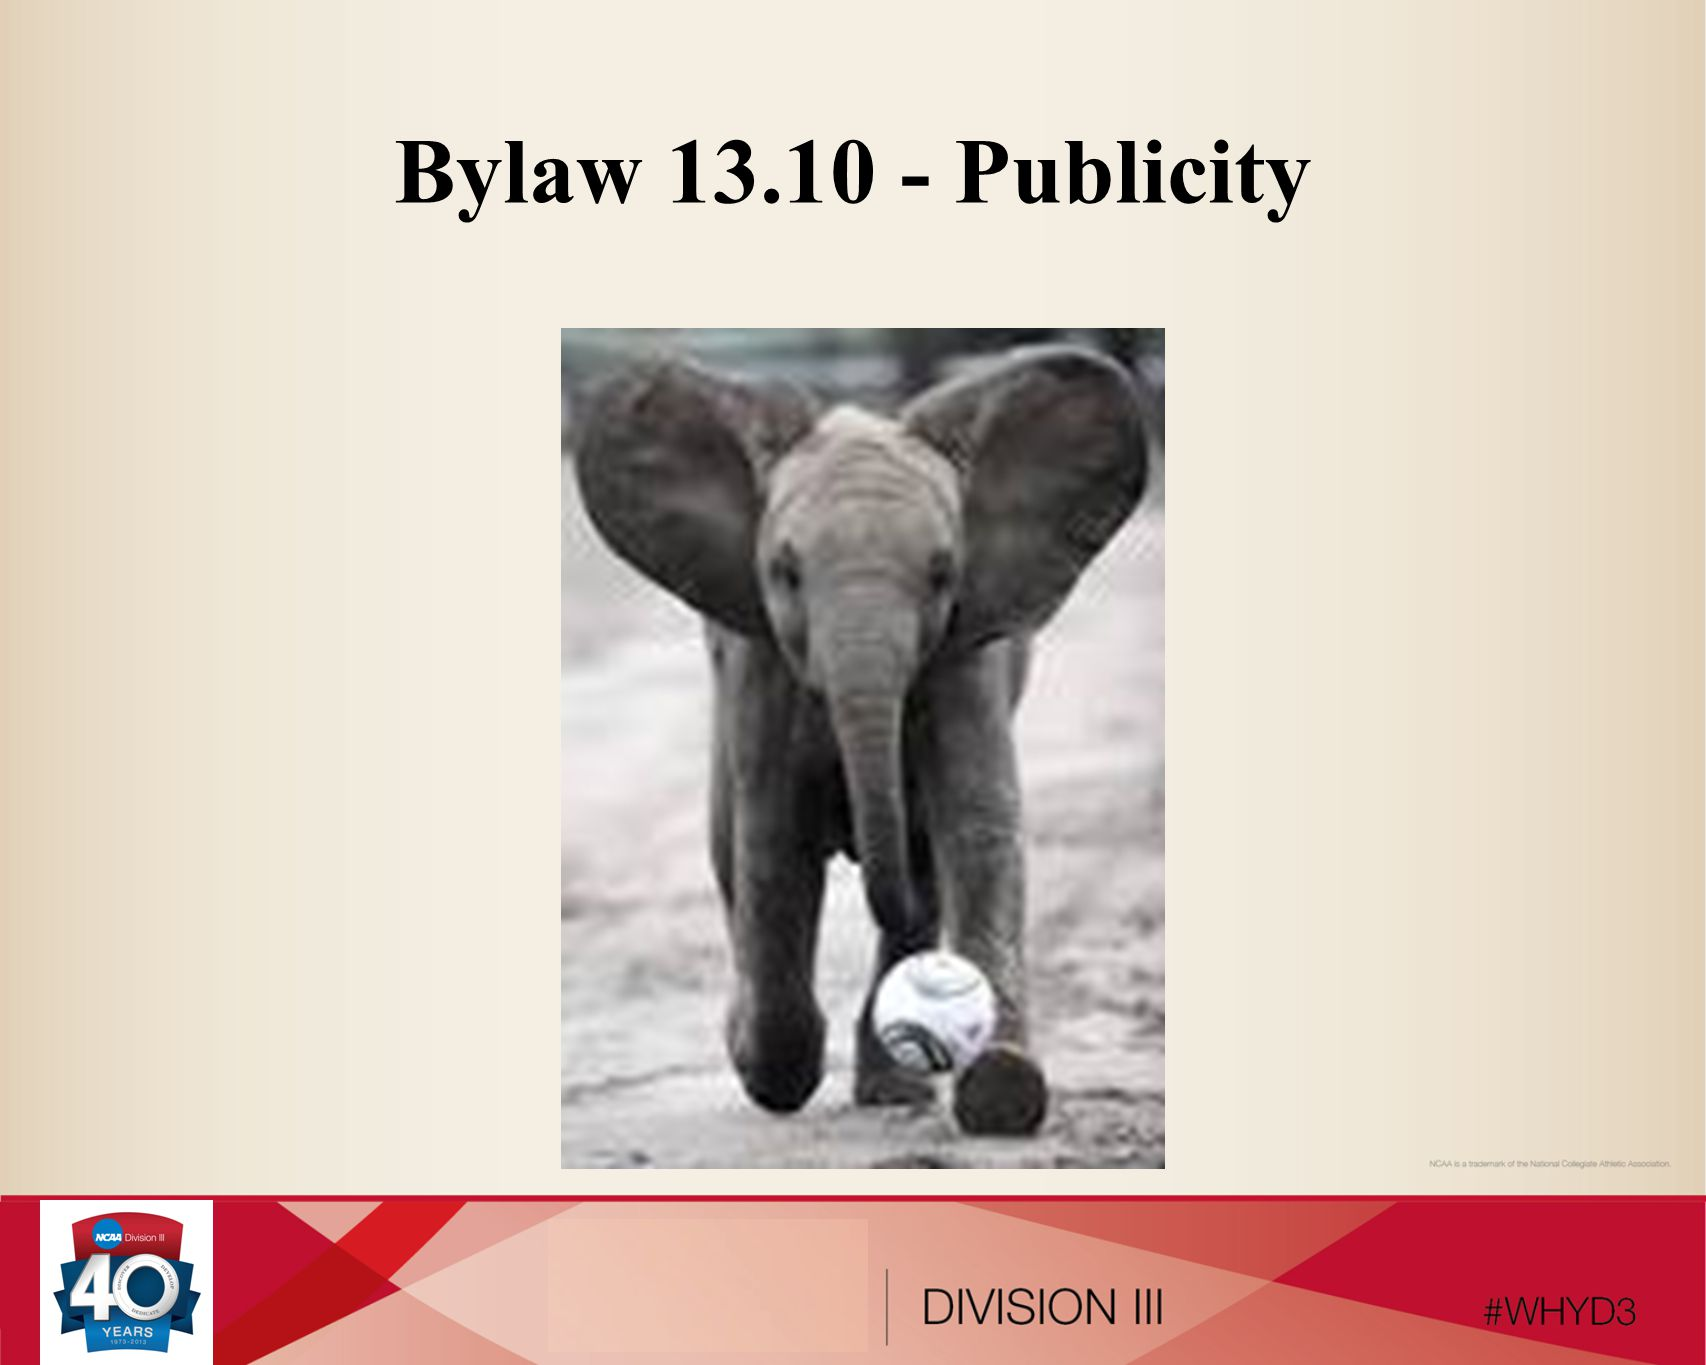 Bylaw 13.10 - Publicity